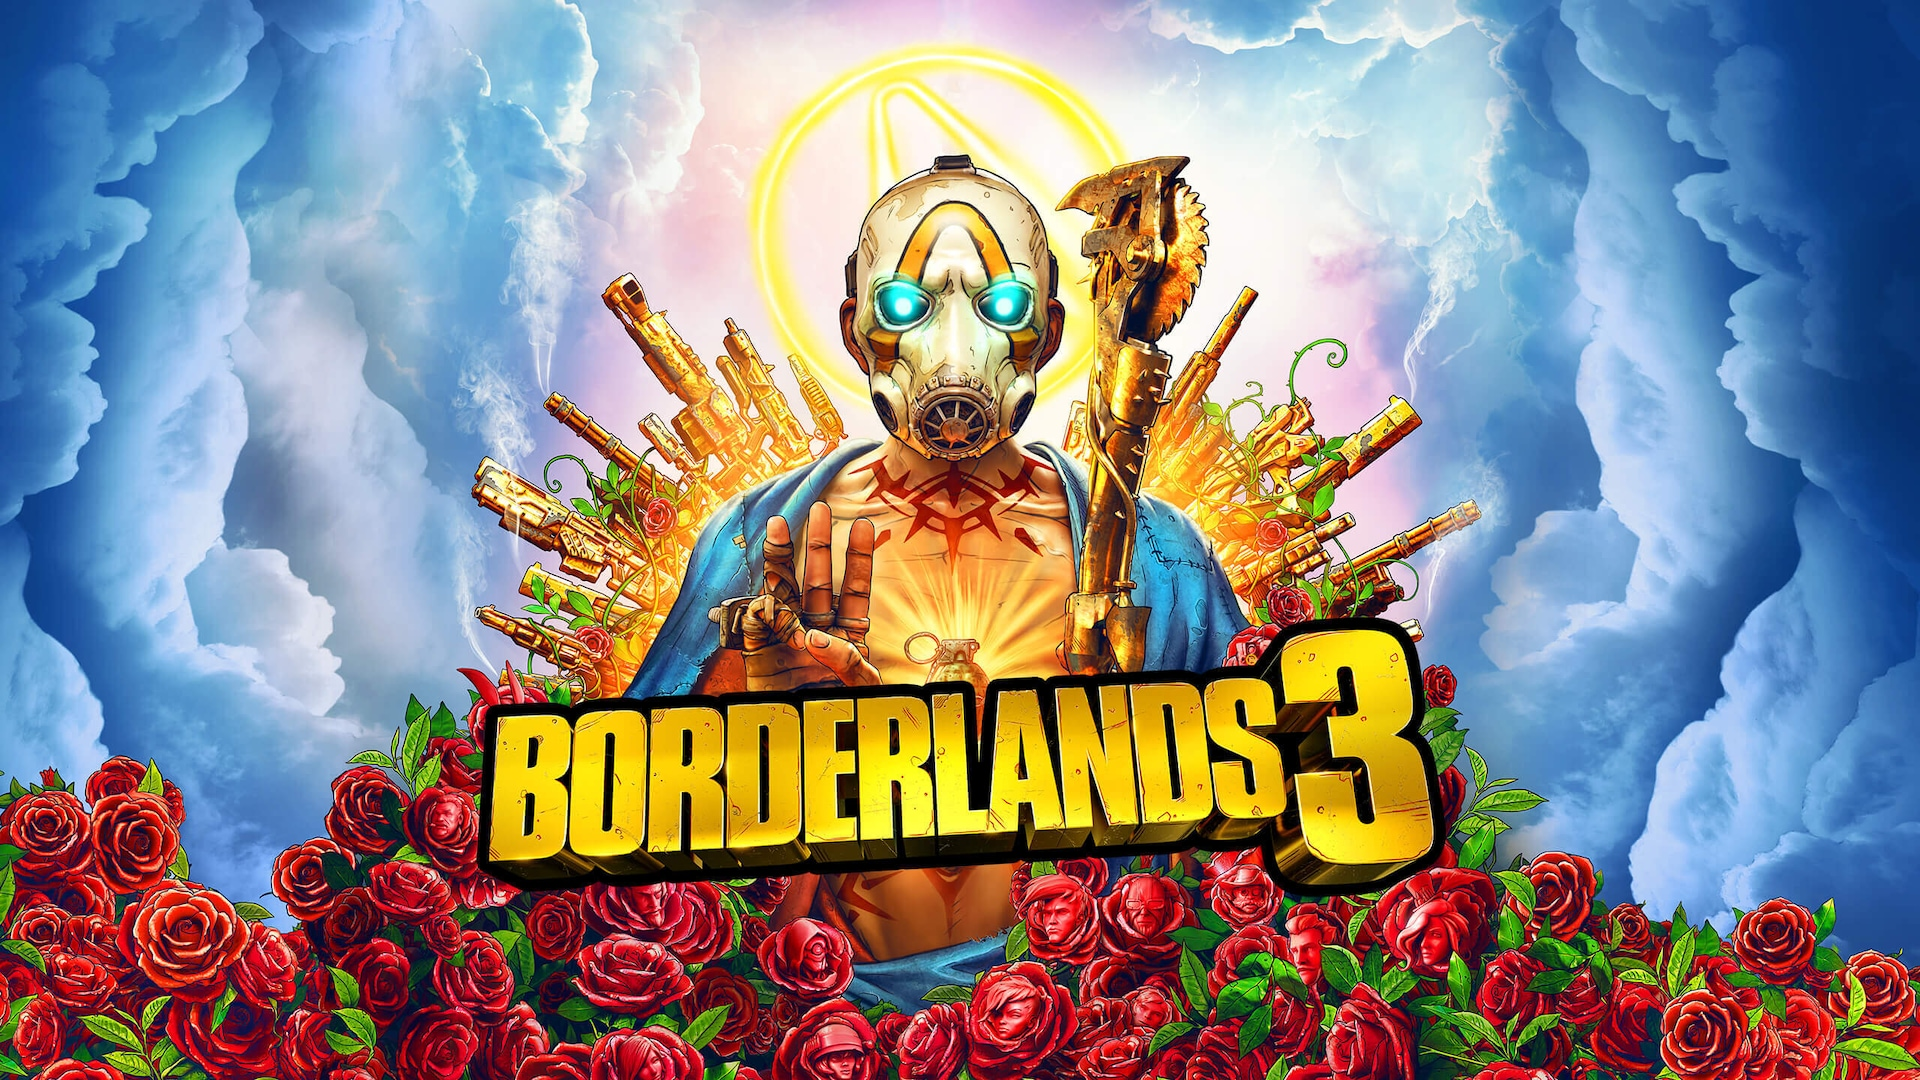 Borderlands 3 on the Epic Games Store